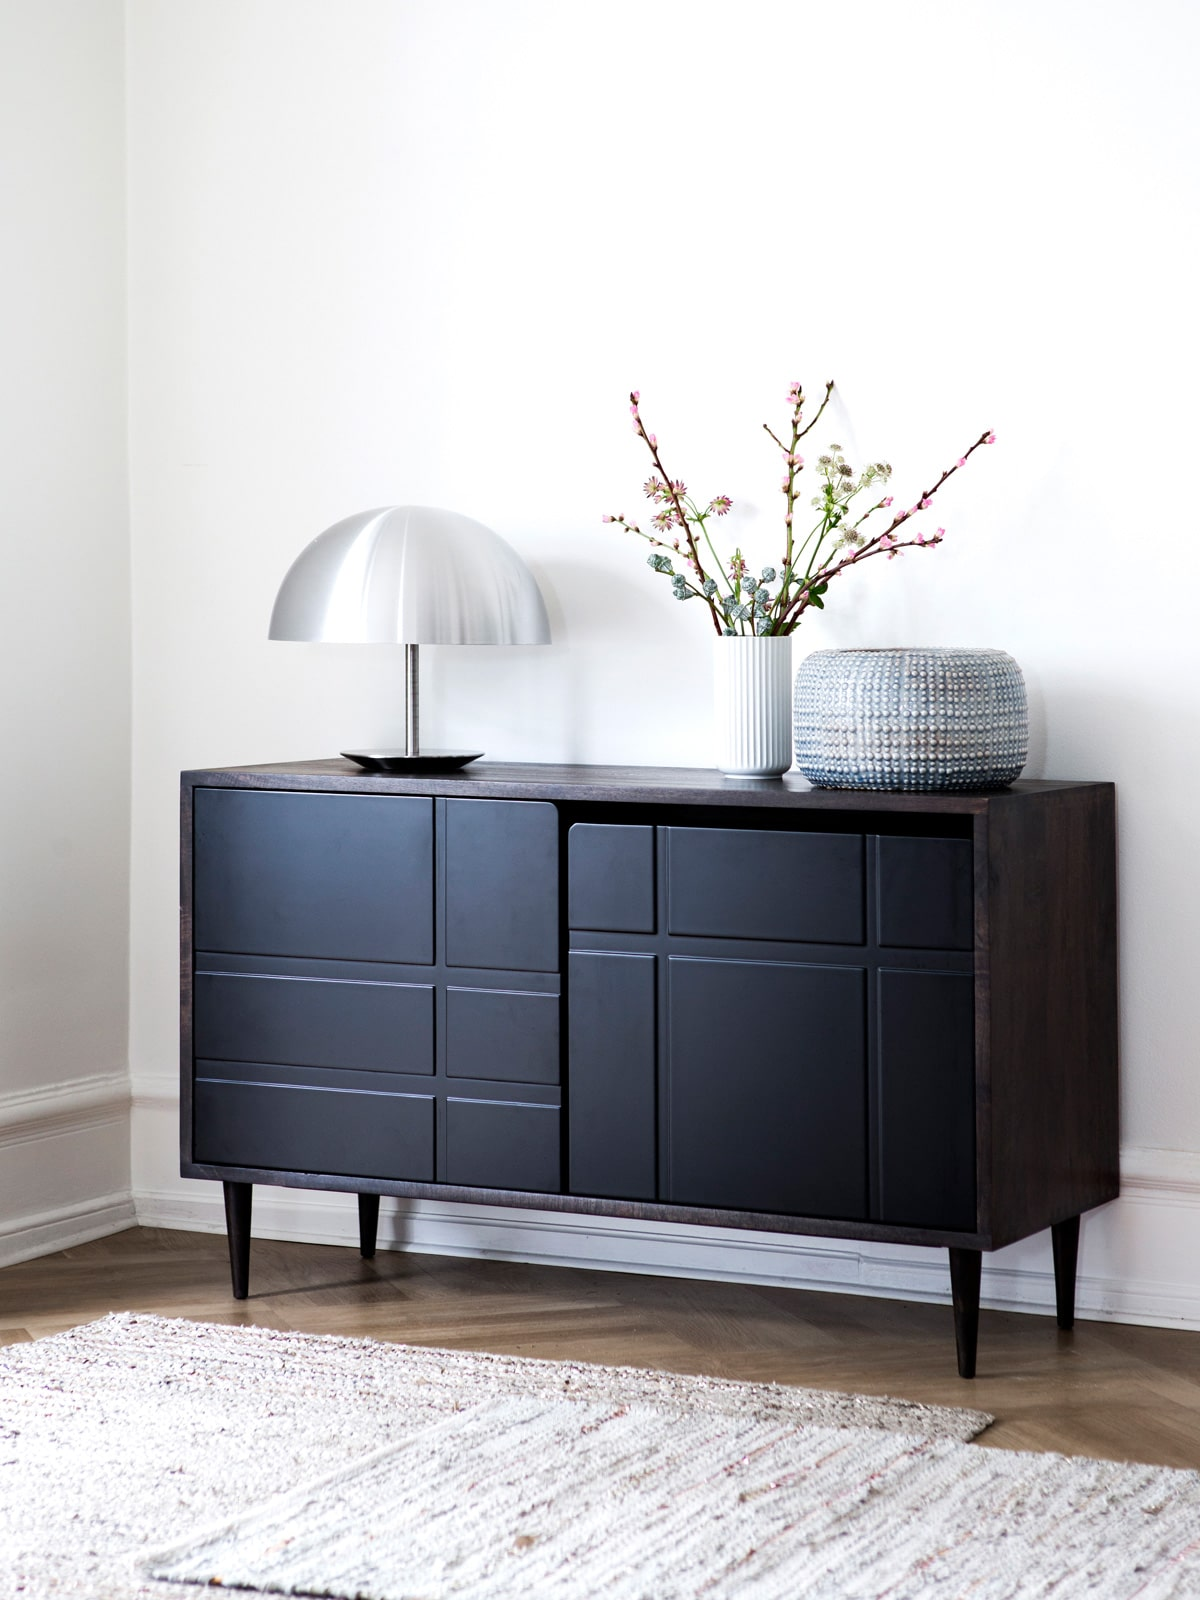 calabash archive lampen leuchten designerleuchten online berlin design. Black Bedroom Furniture Sets. Home Design Ideas